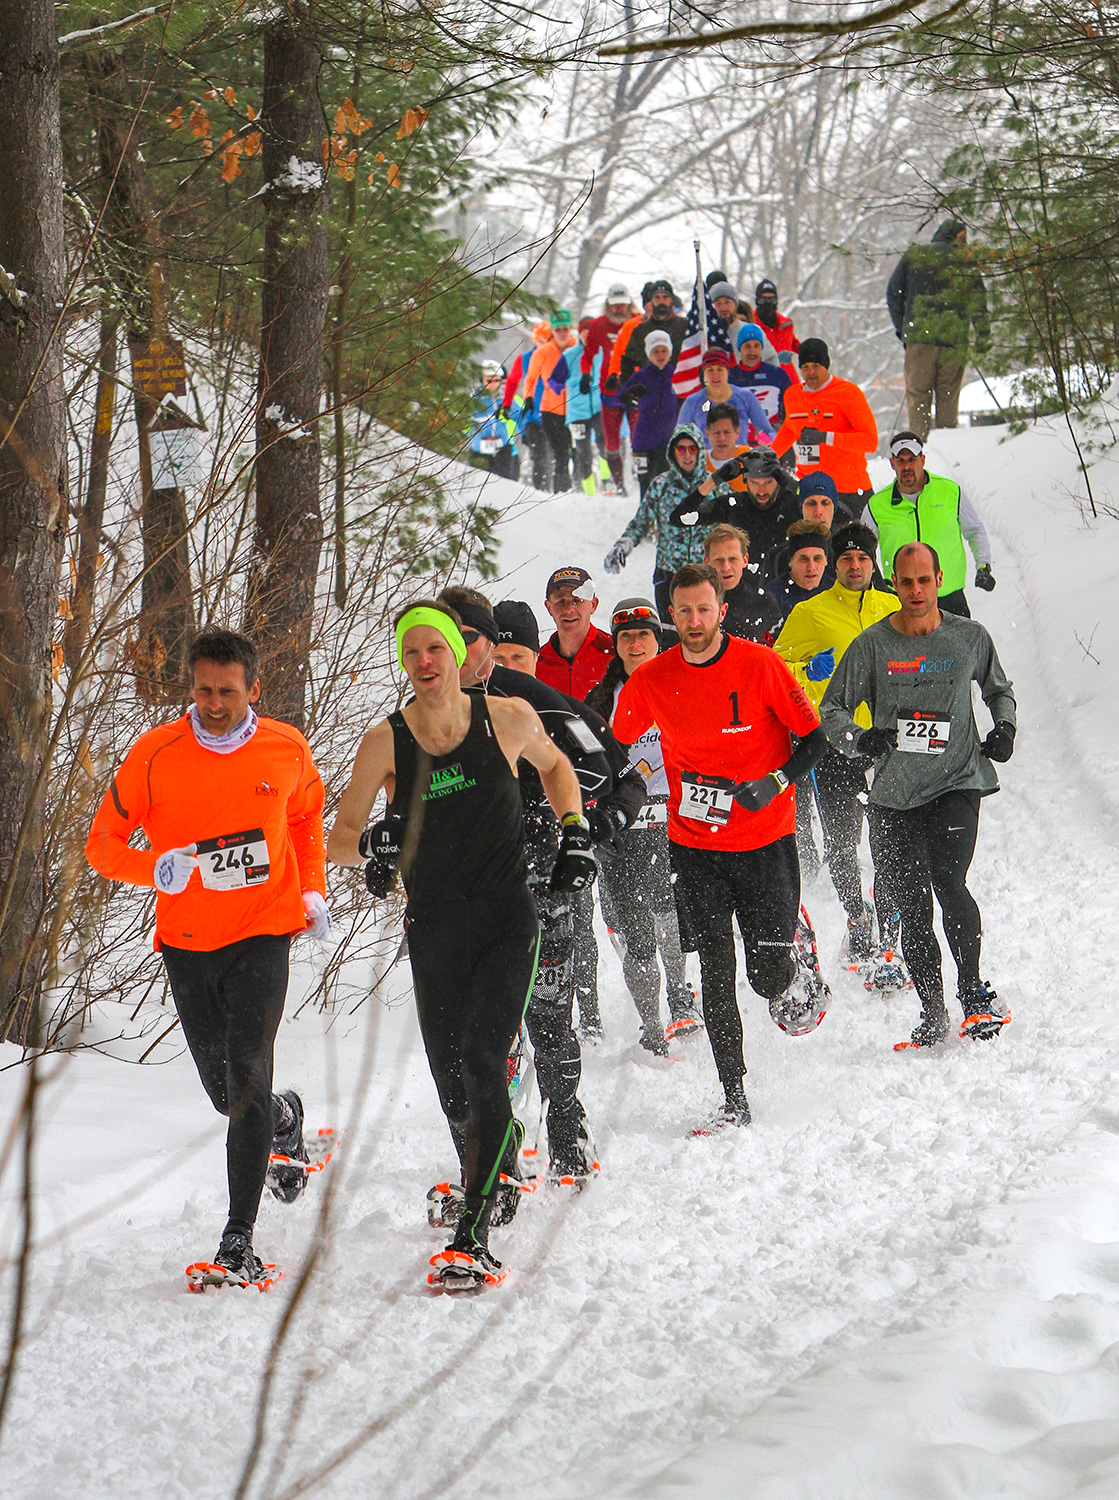 Start of the 2018 Camp Saratoga 8K Snowshoe Race at Wilton Wildlife Preserve & Park.    Brian Teague